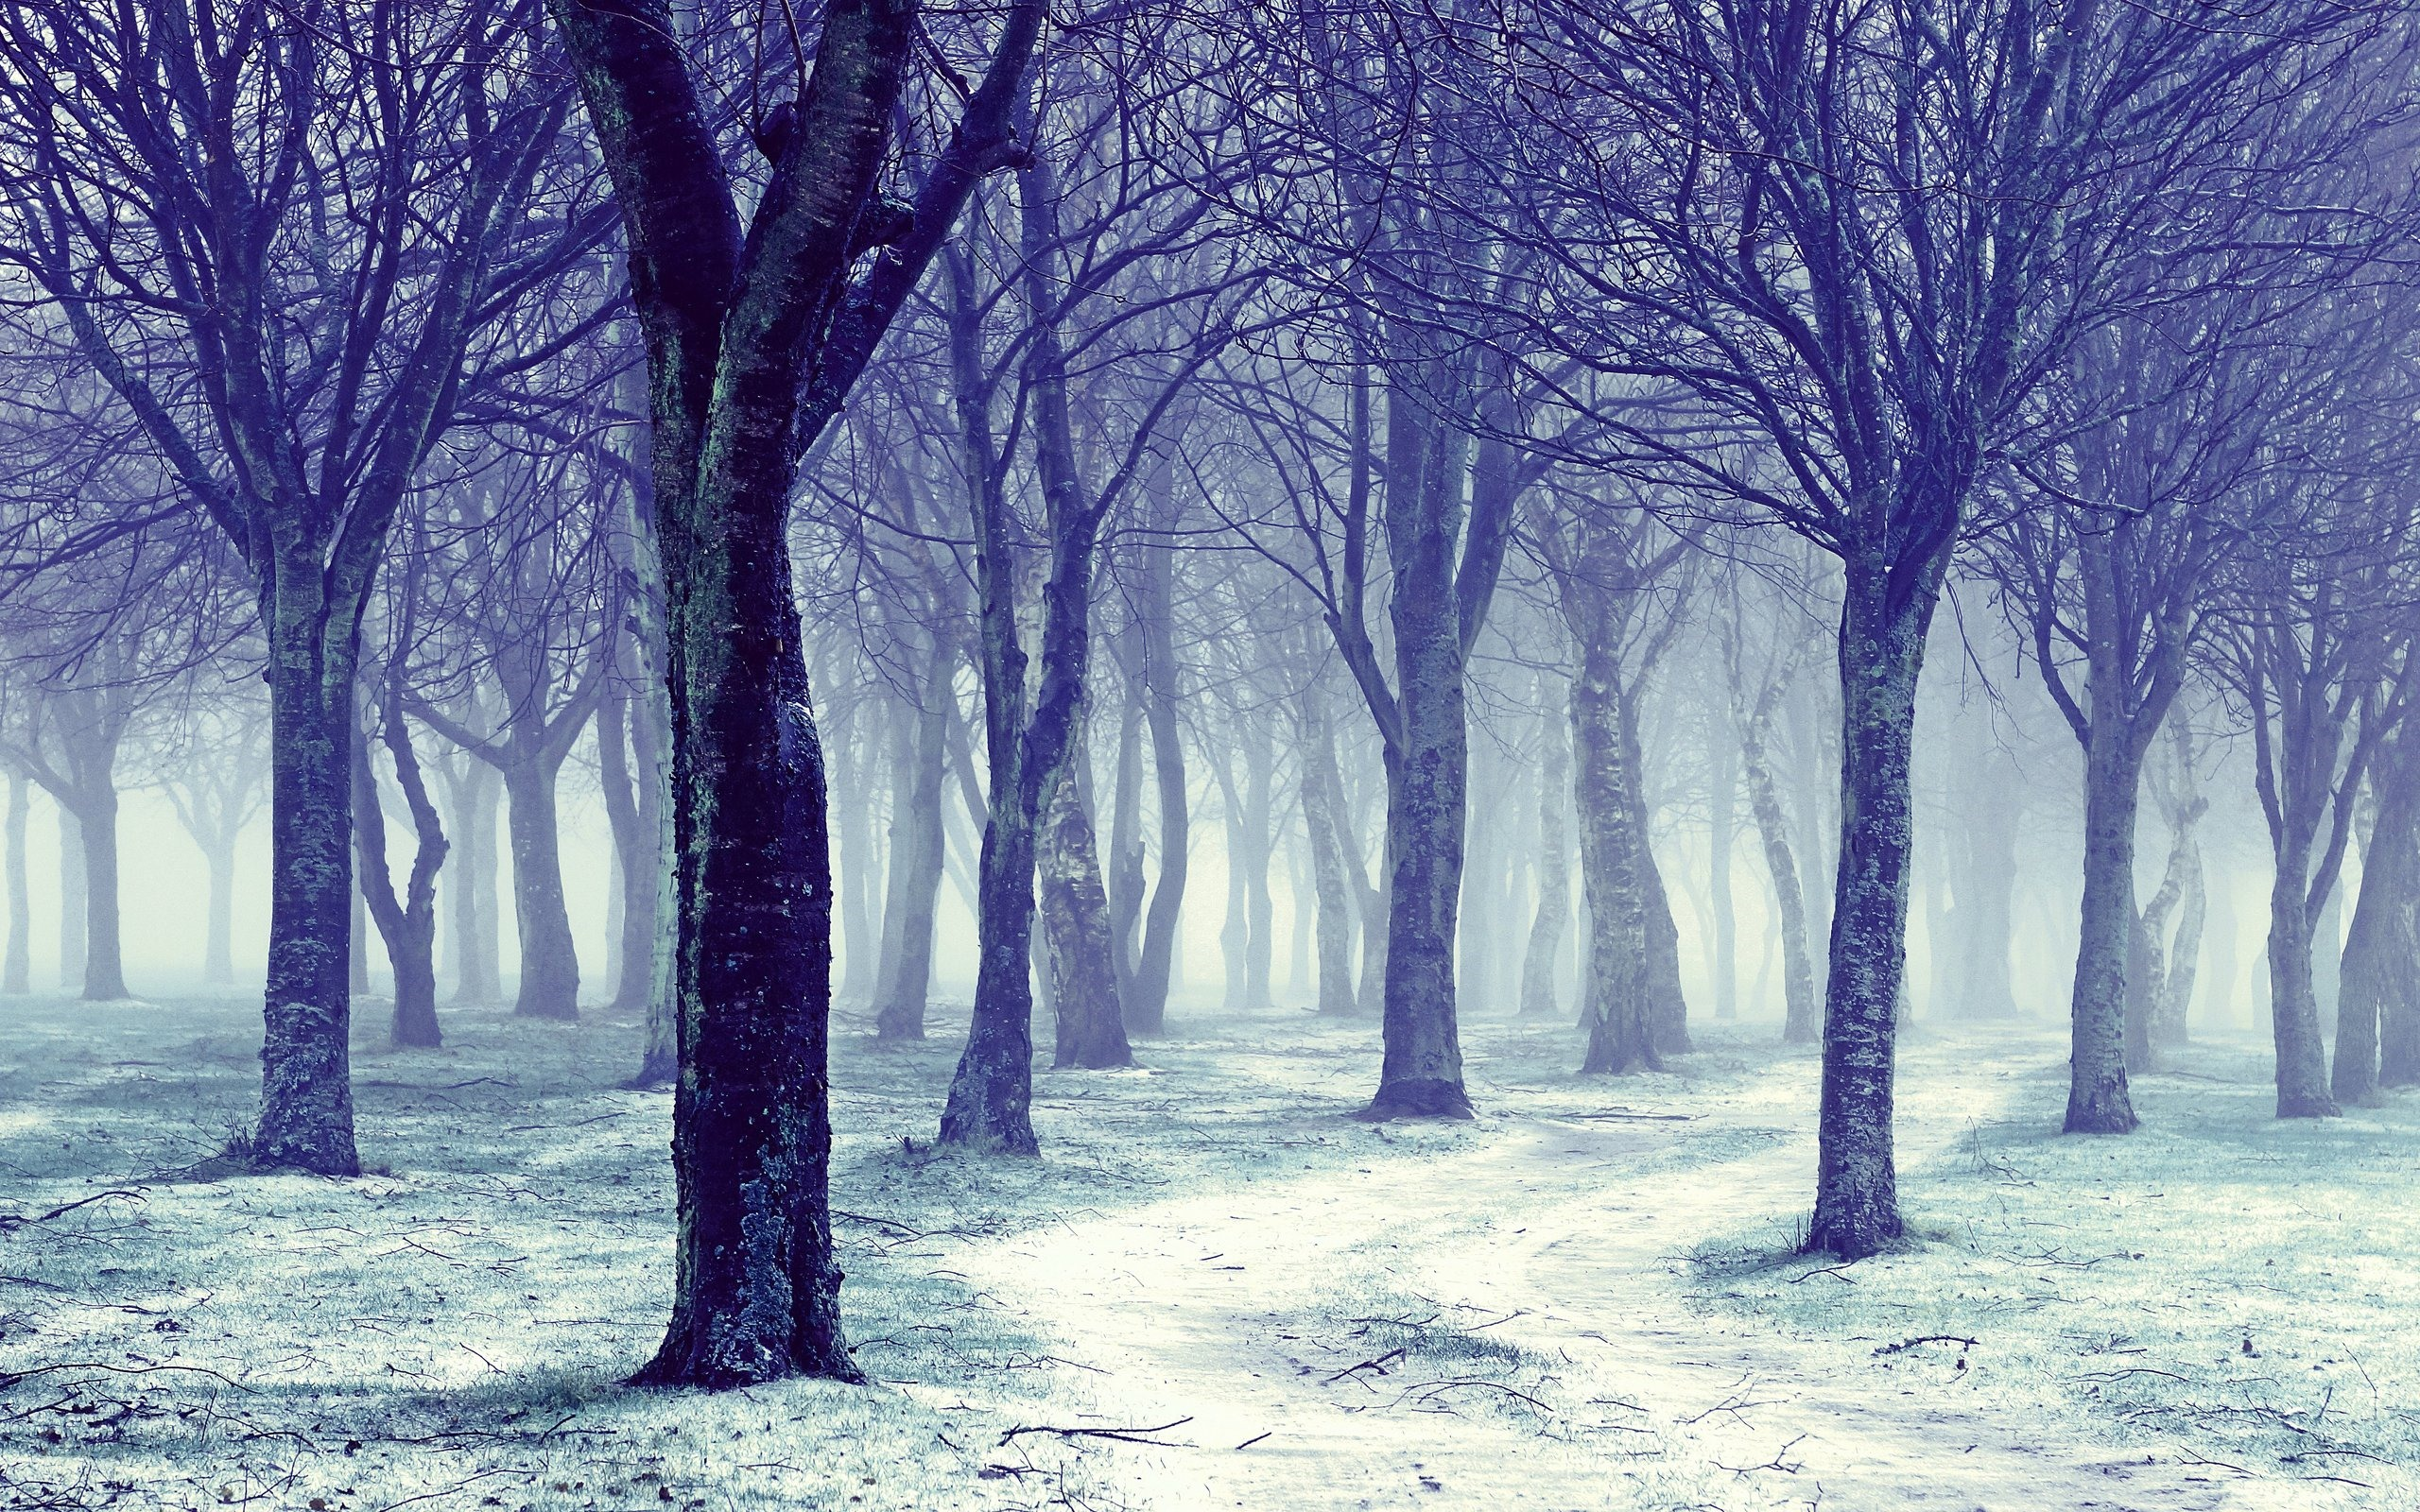 Wallpaper Trees Snow Fog Winter Morning 2560x1600 Hd